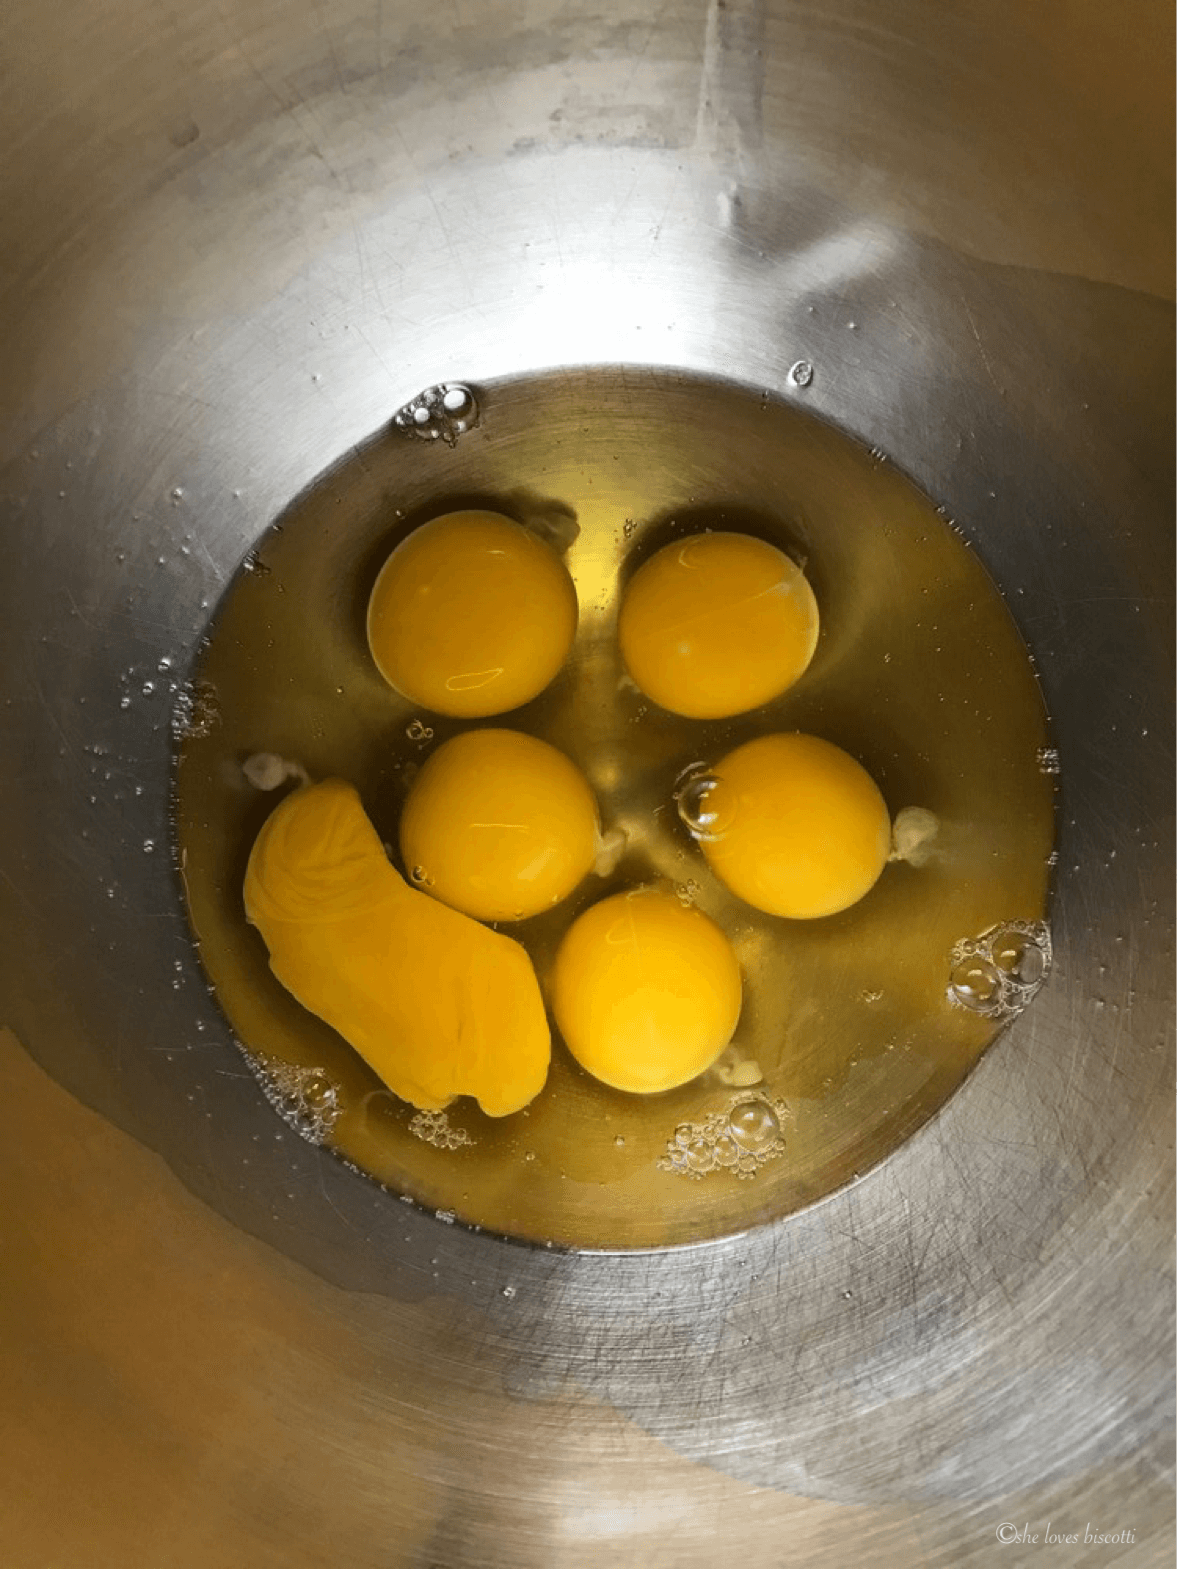 6 whole eggs in a bowl.